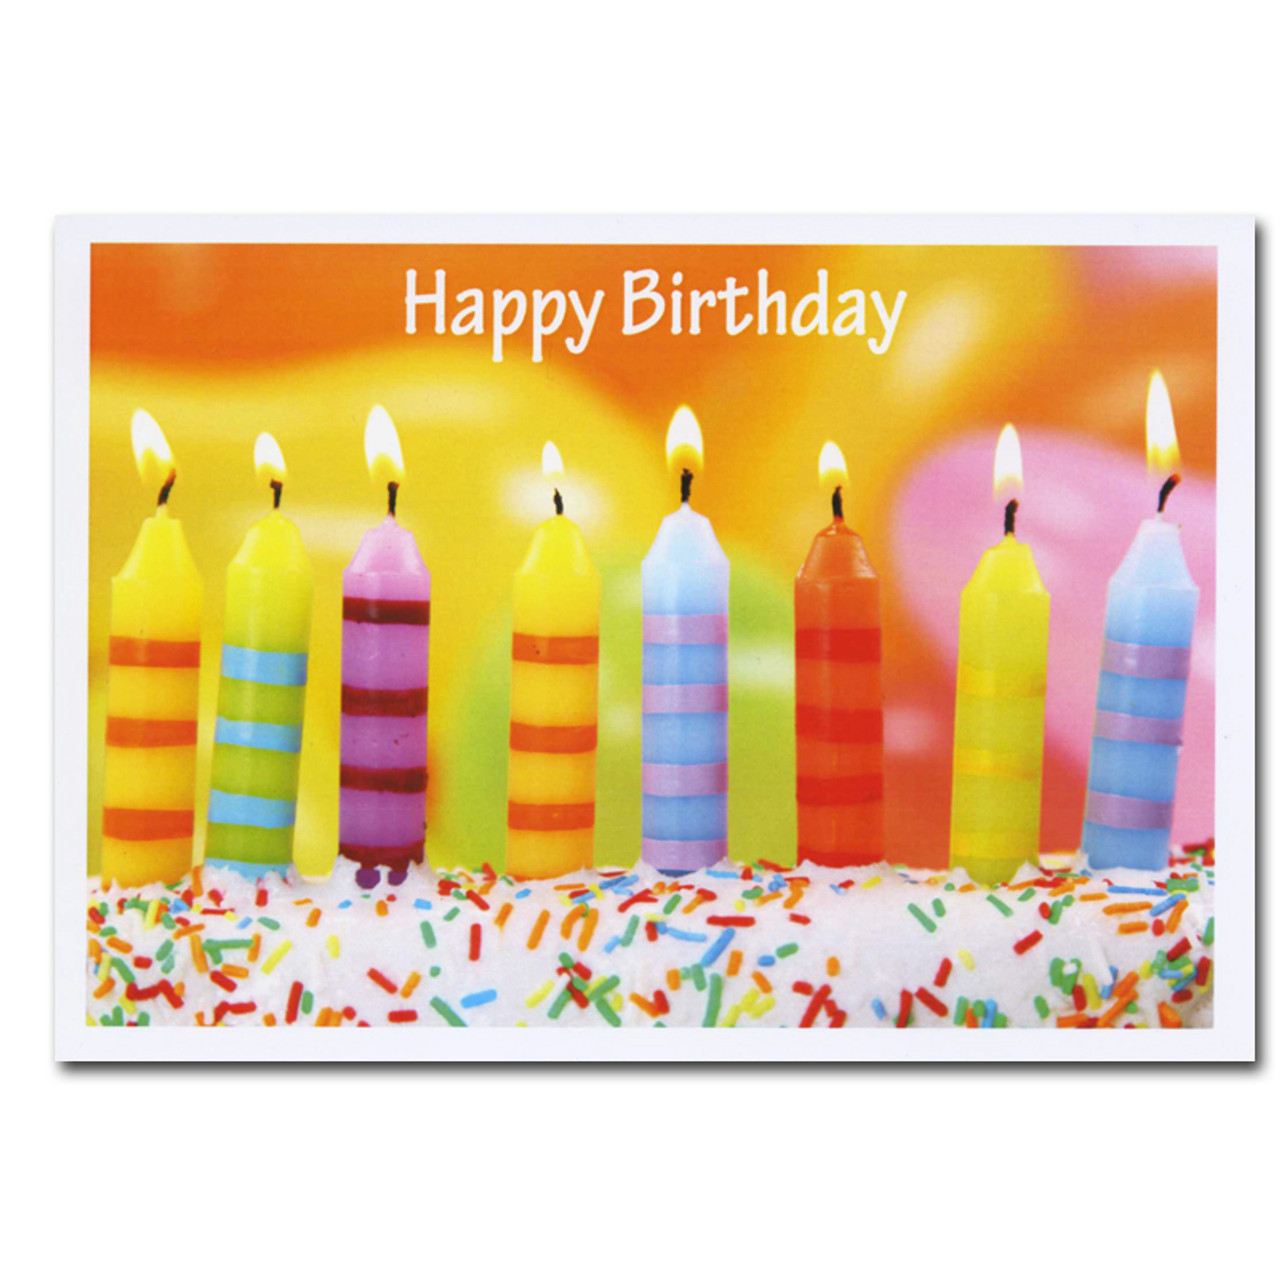 Cover of Line Up birthday card: Seven brightly colored striped candles on a cake against a backdrop of orange and yellow balloons